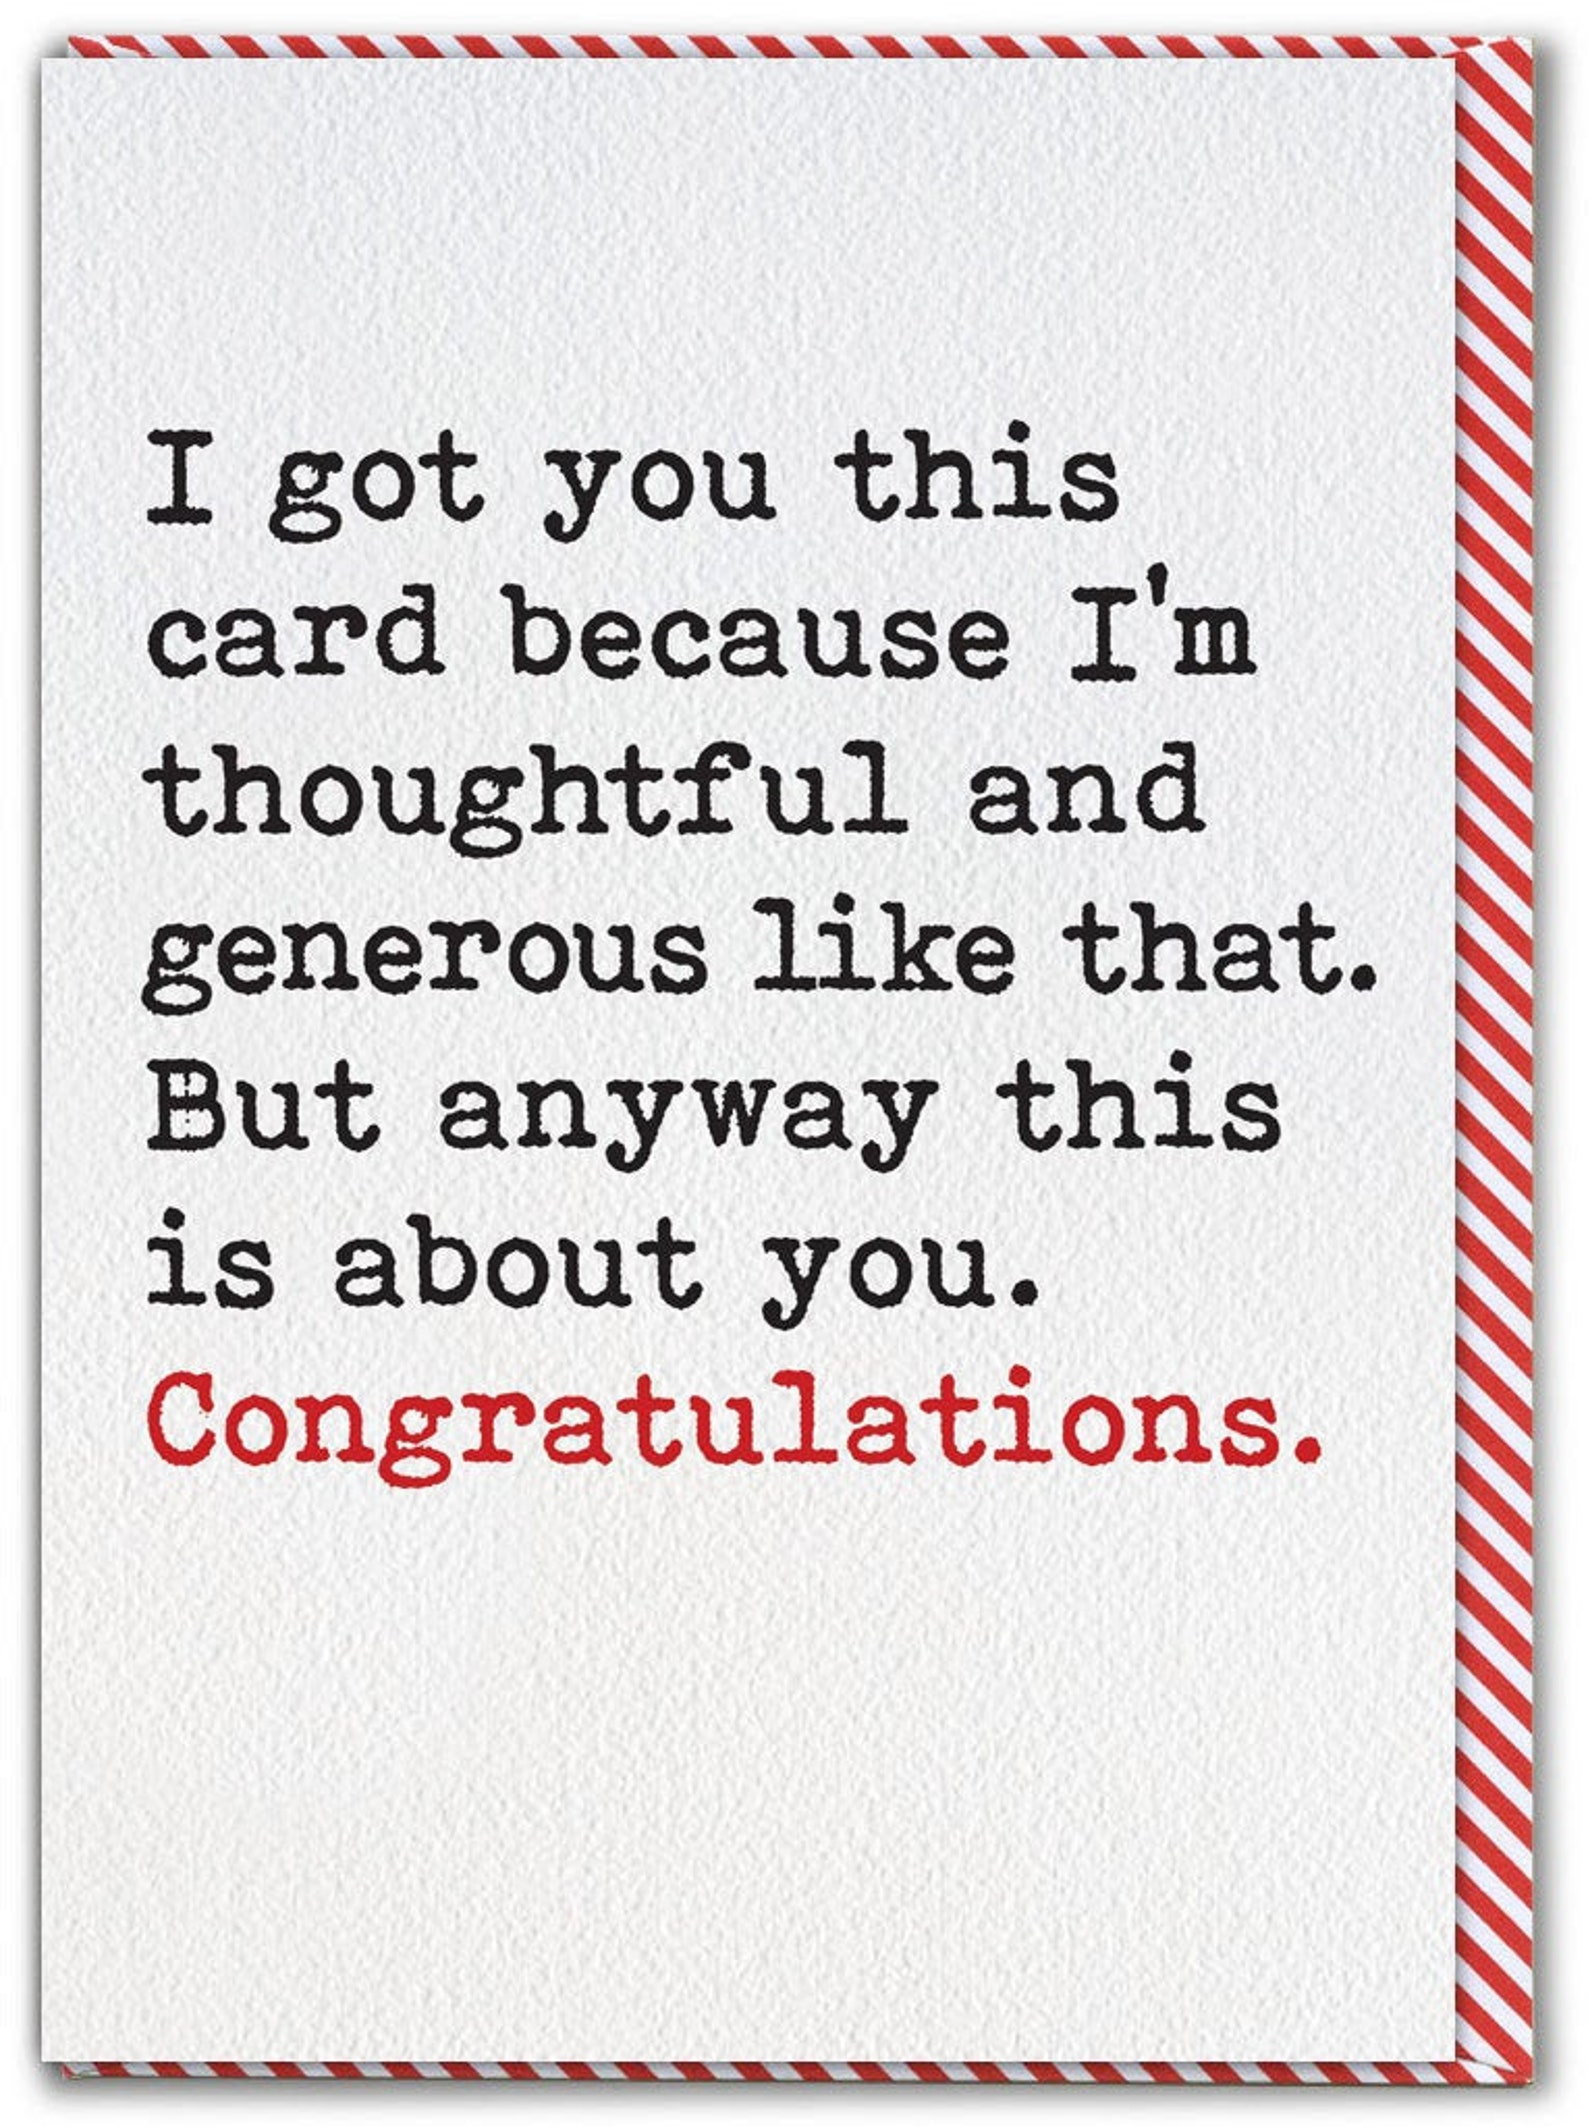 Funny Congratulations Card For Him Her Humorous Cheeky   Etsy